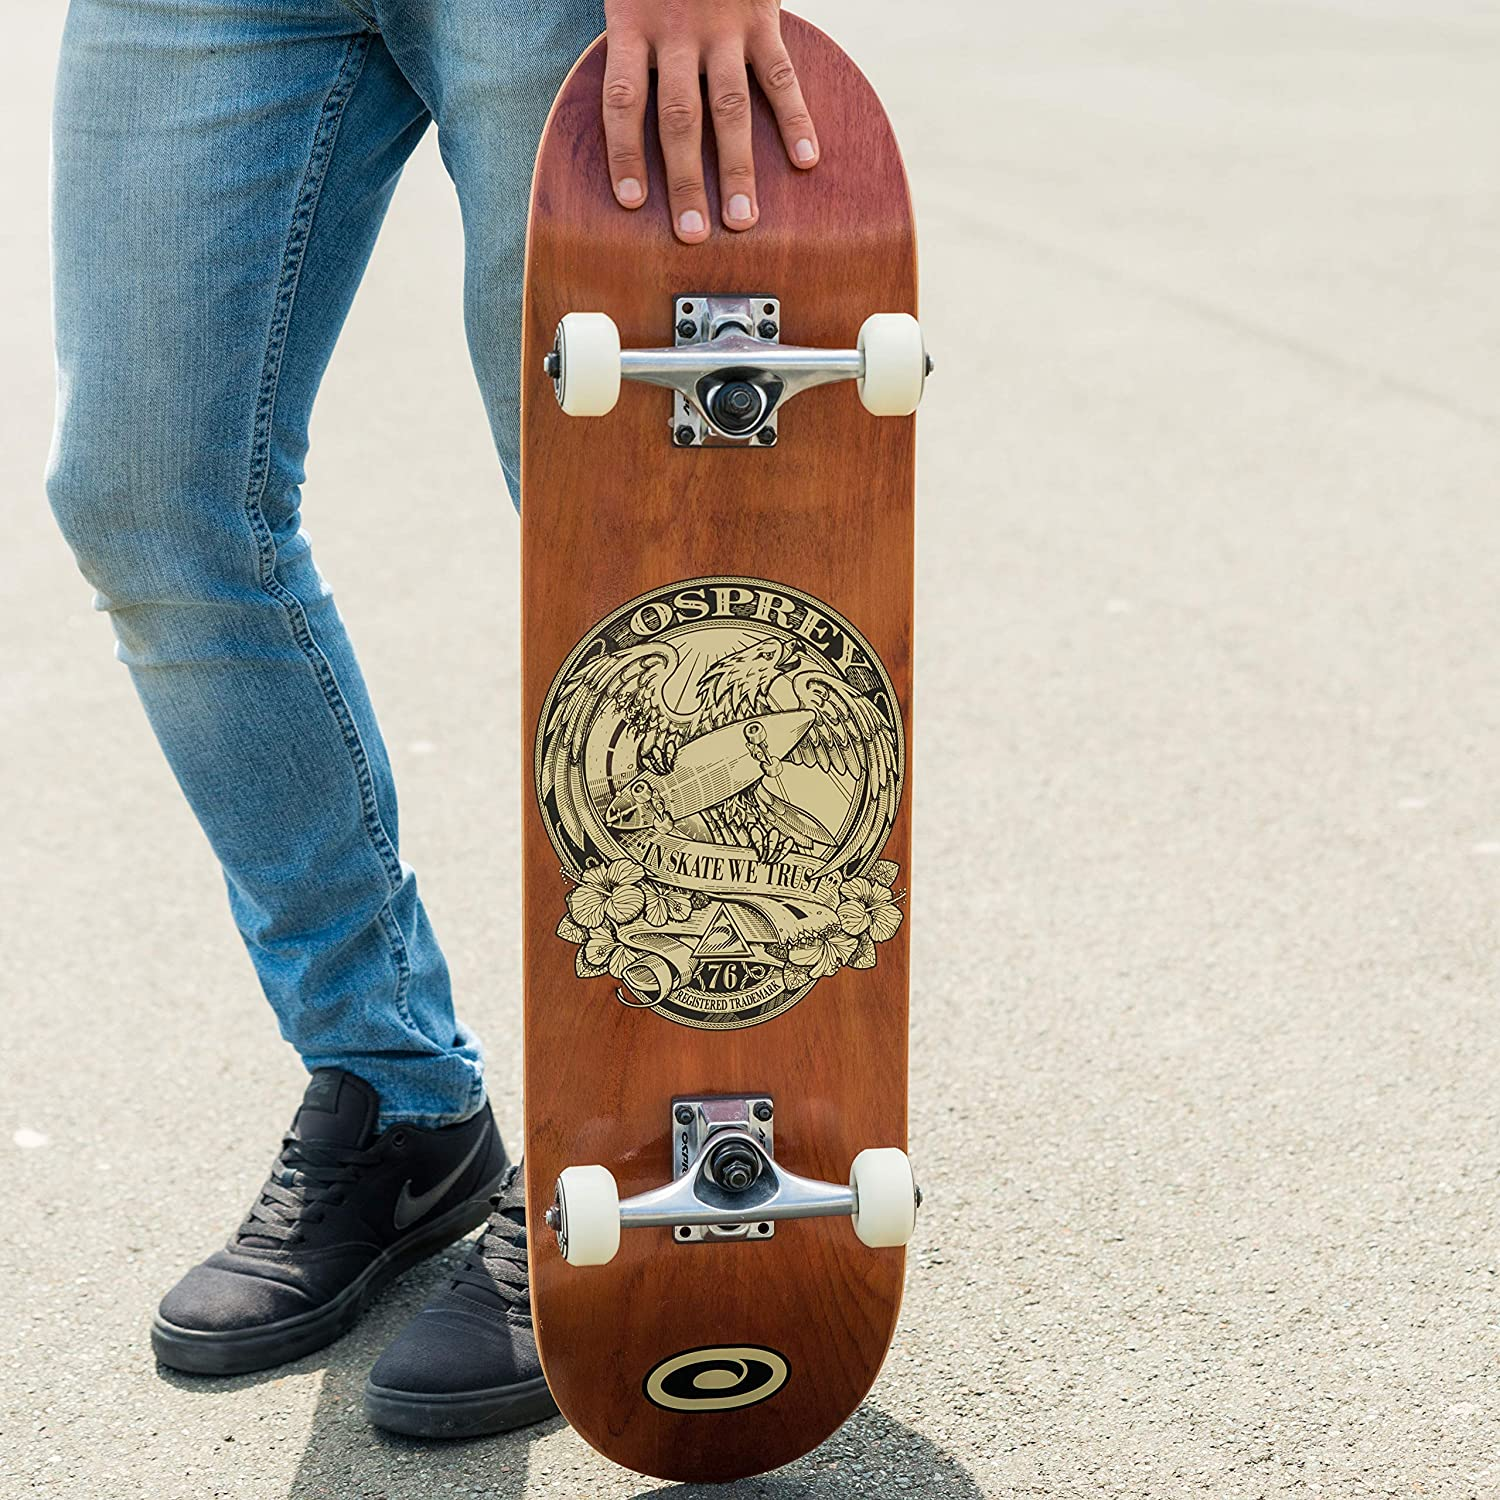 220lbs Max User Weight Multiple Designs 31 Inch Double Kick Concave Adult Skateboard with 7 Layer Canadian Maple Deck Osprey Professional Skateboards for Beginners